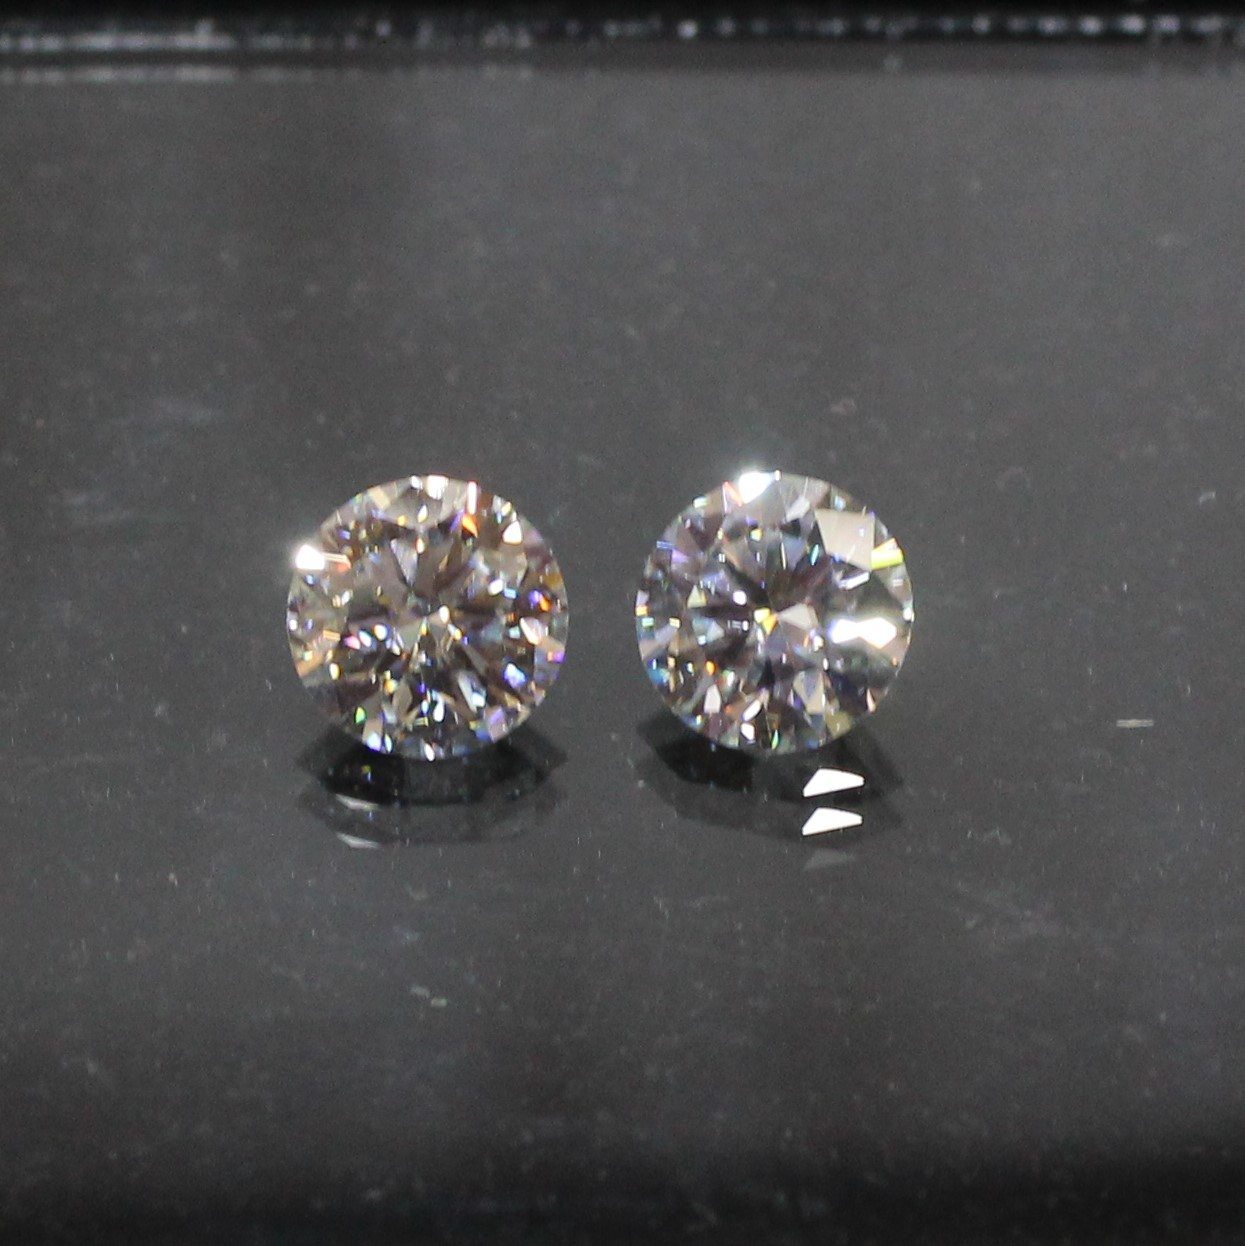 Amazing Moissanite Faceted Gemstone Pair